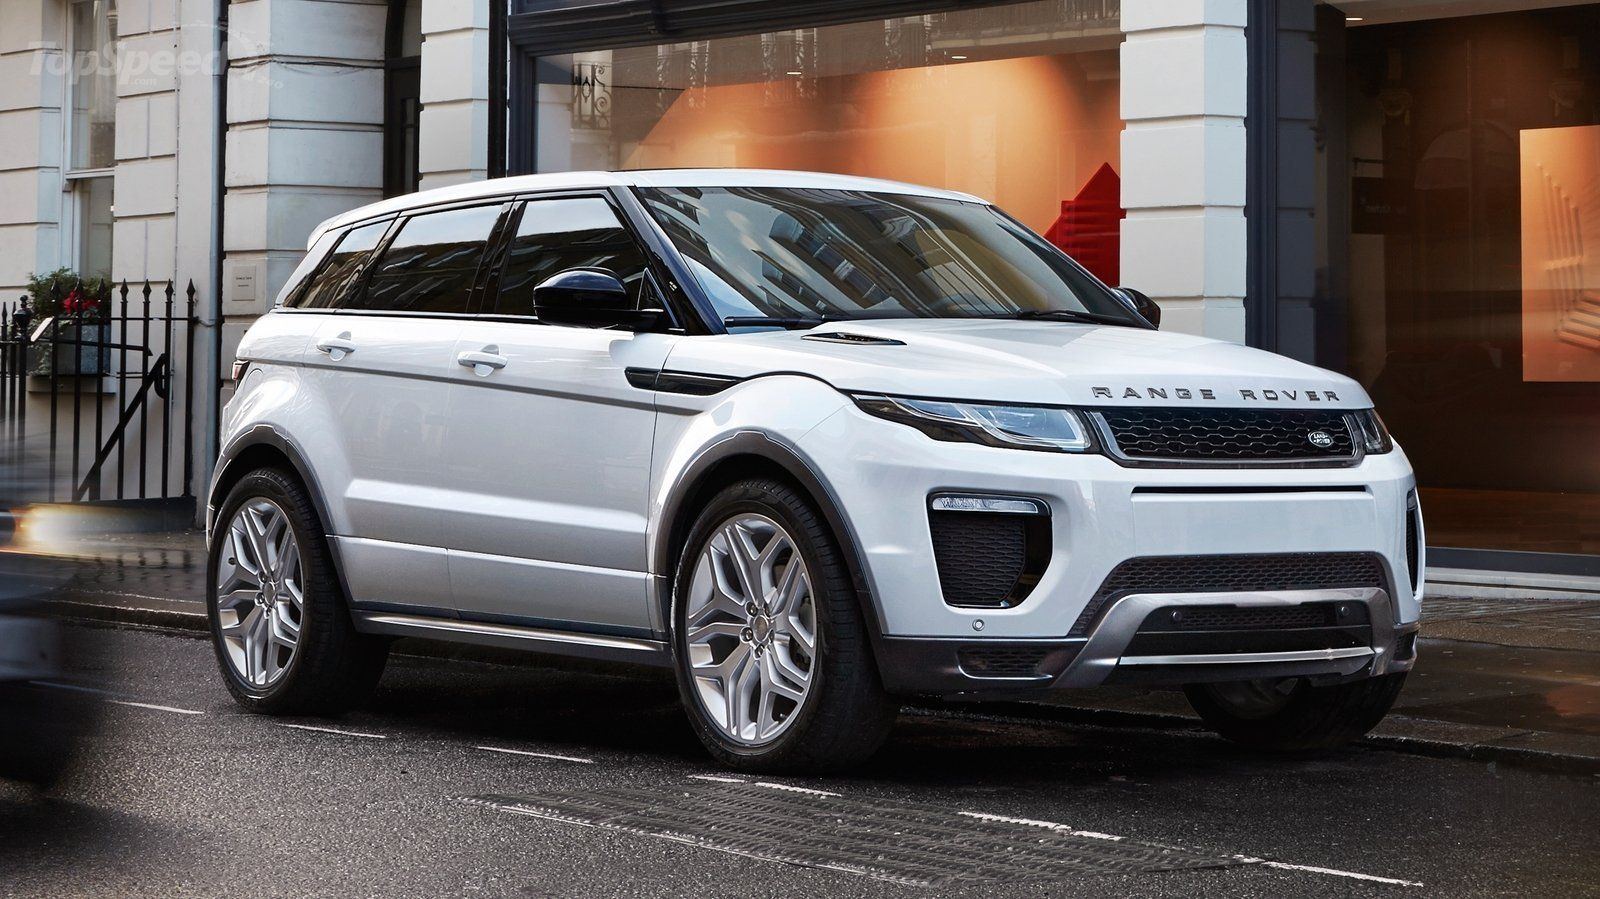 Best 25 range rover evoque review ideas on pinterest range rover evoque range rover near me and rr evoque